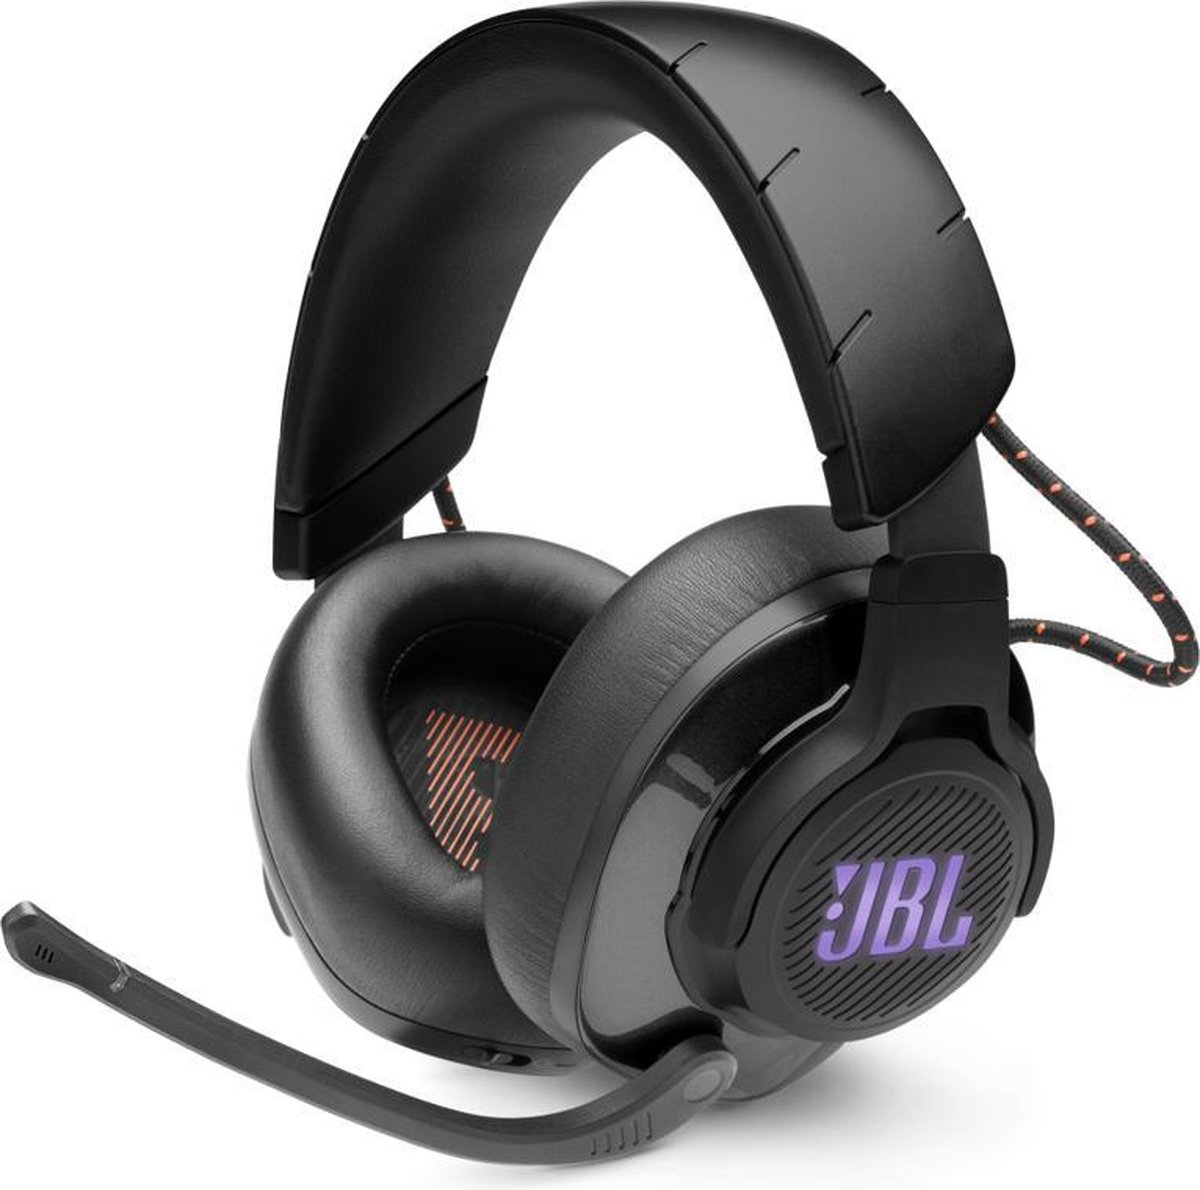 JBL Quantum 600 Zwart Gaming Headphones - Over Ear kopen